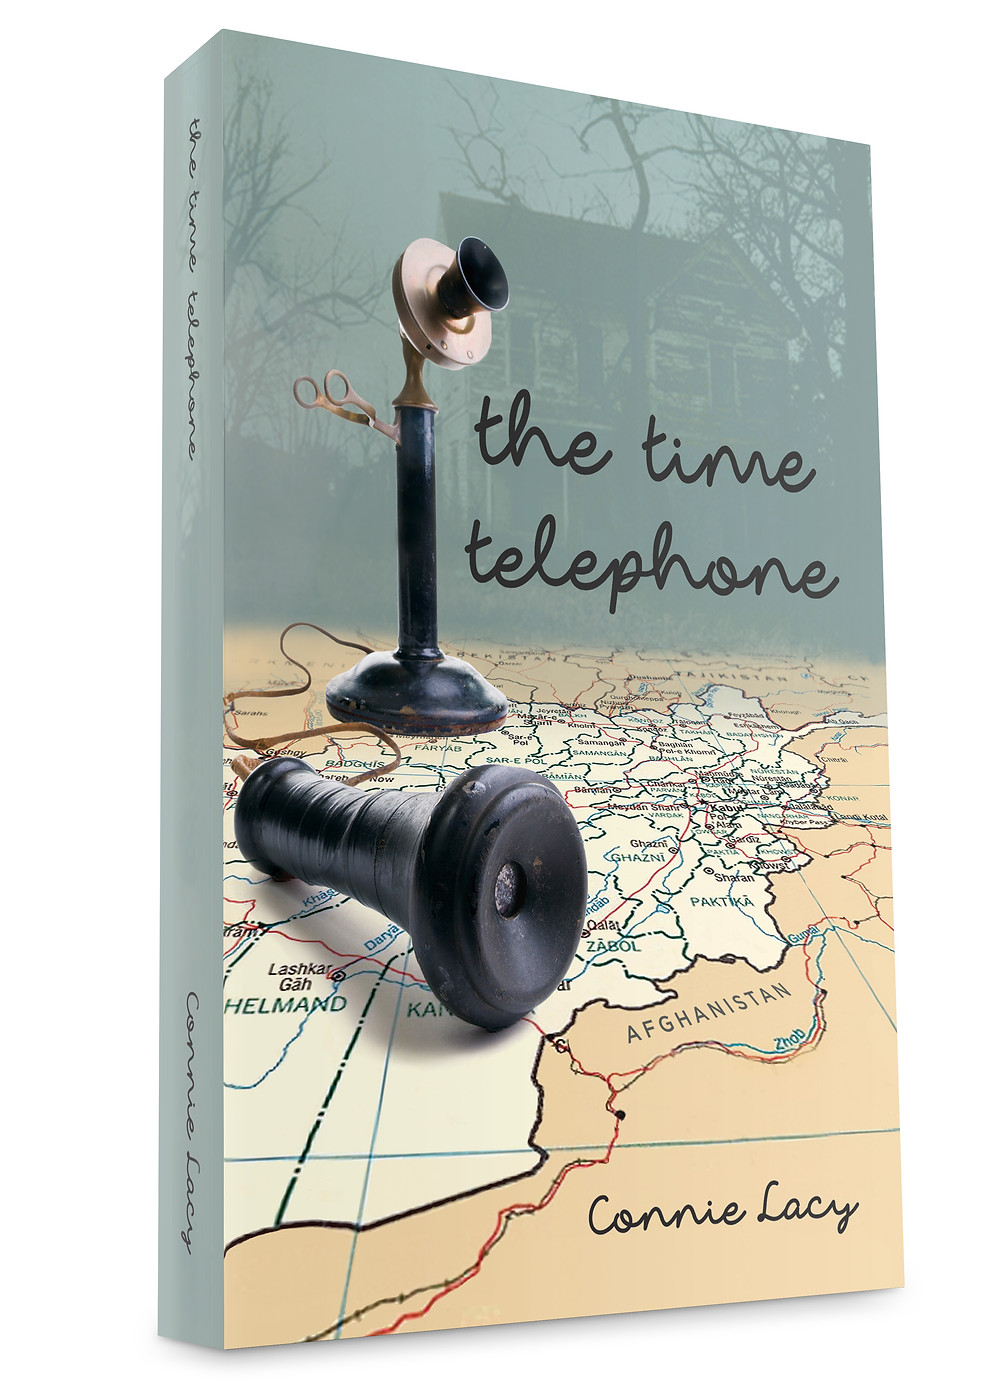 The Time Telephone by Connie Lacy